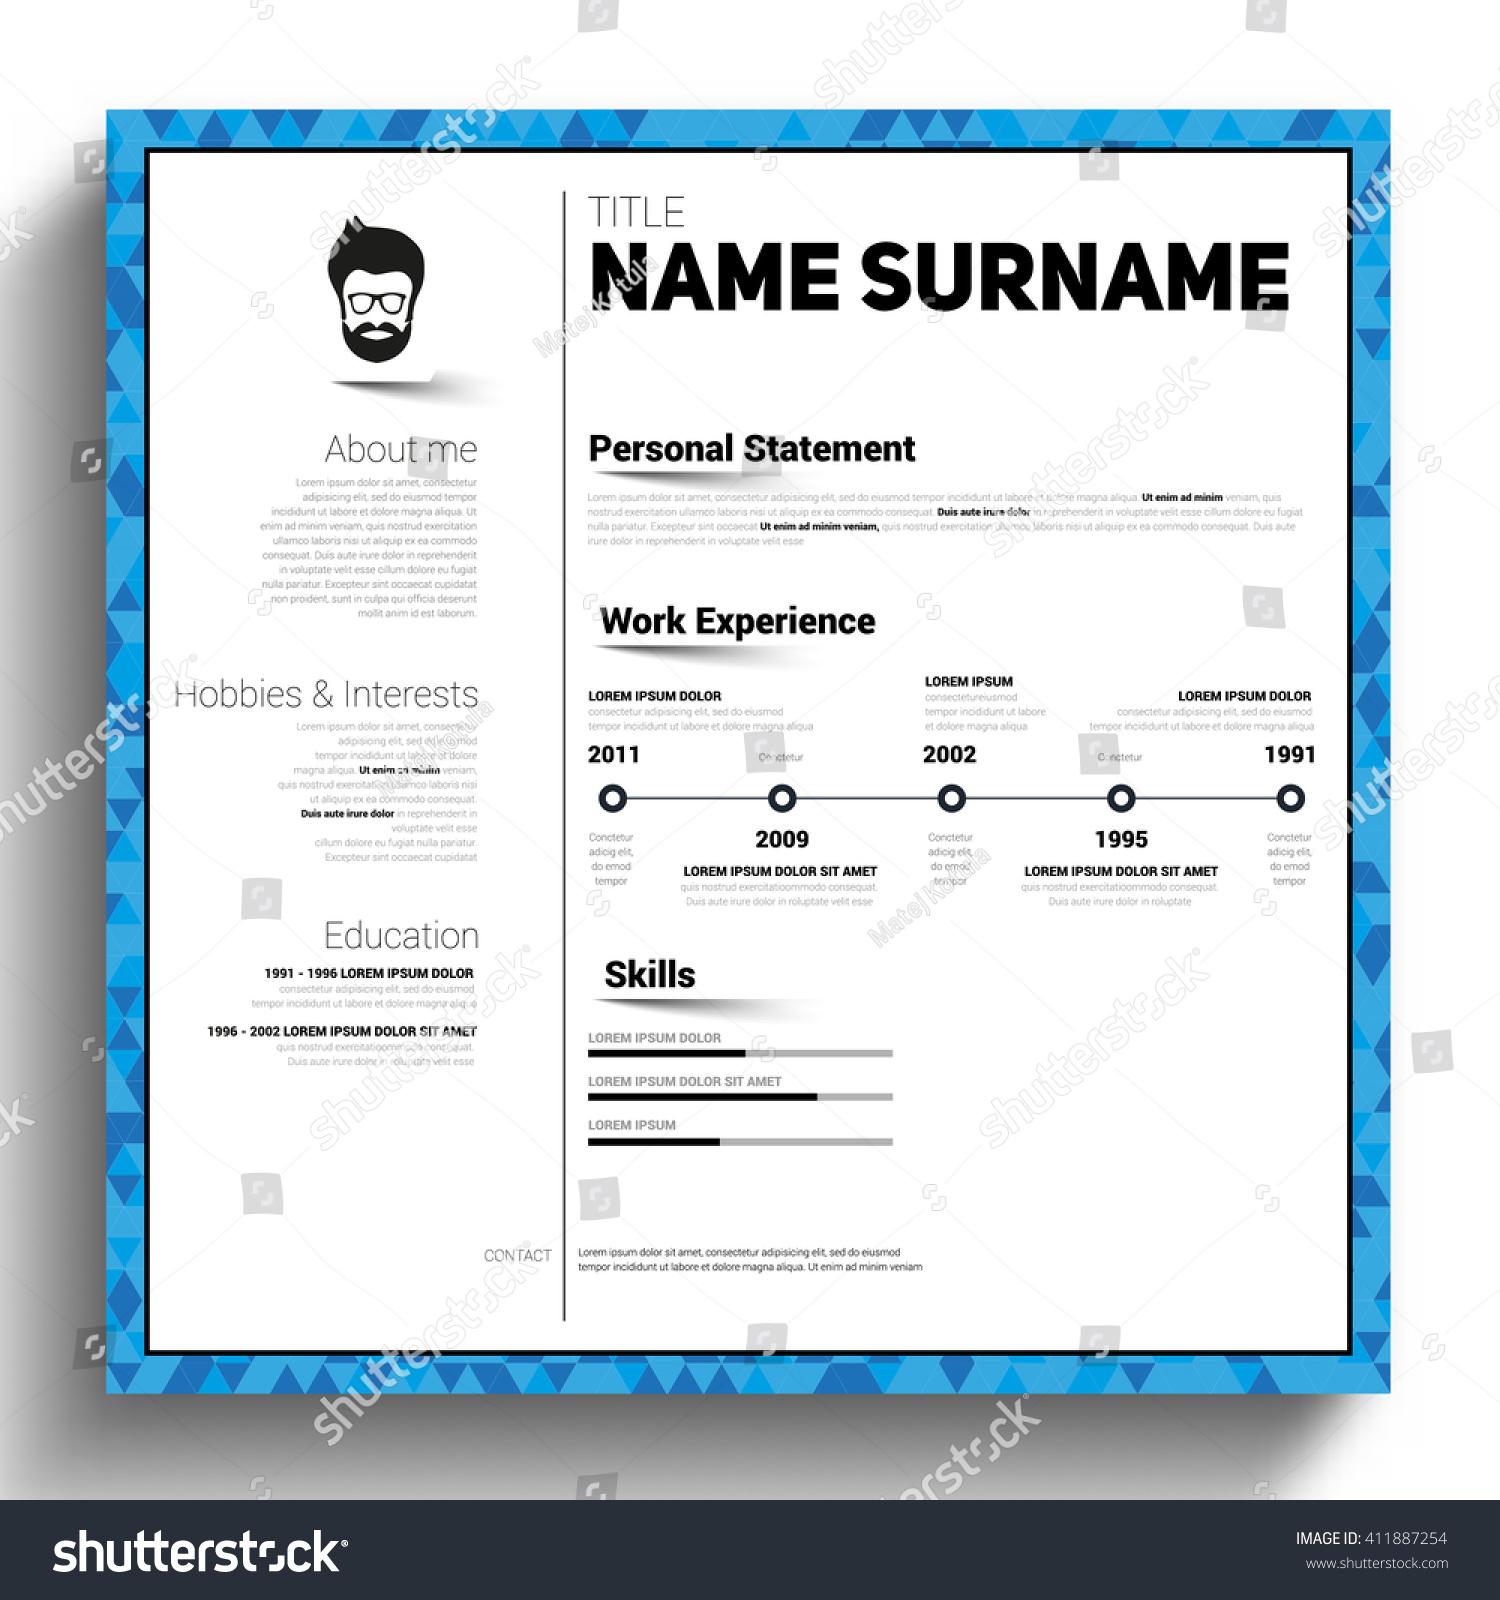 minimalist cv square style resume template stock vector 411887254